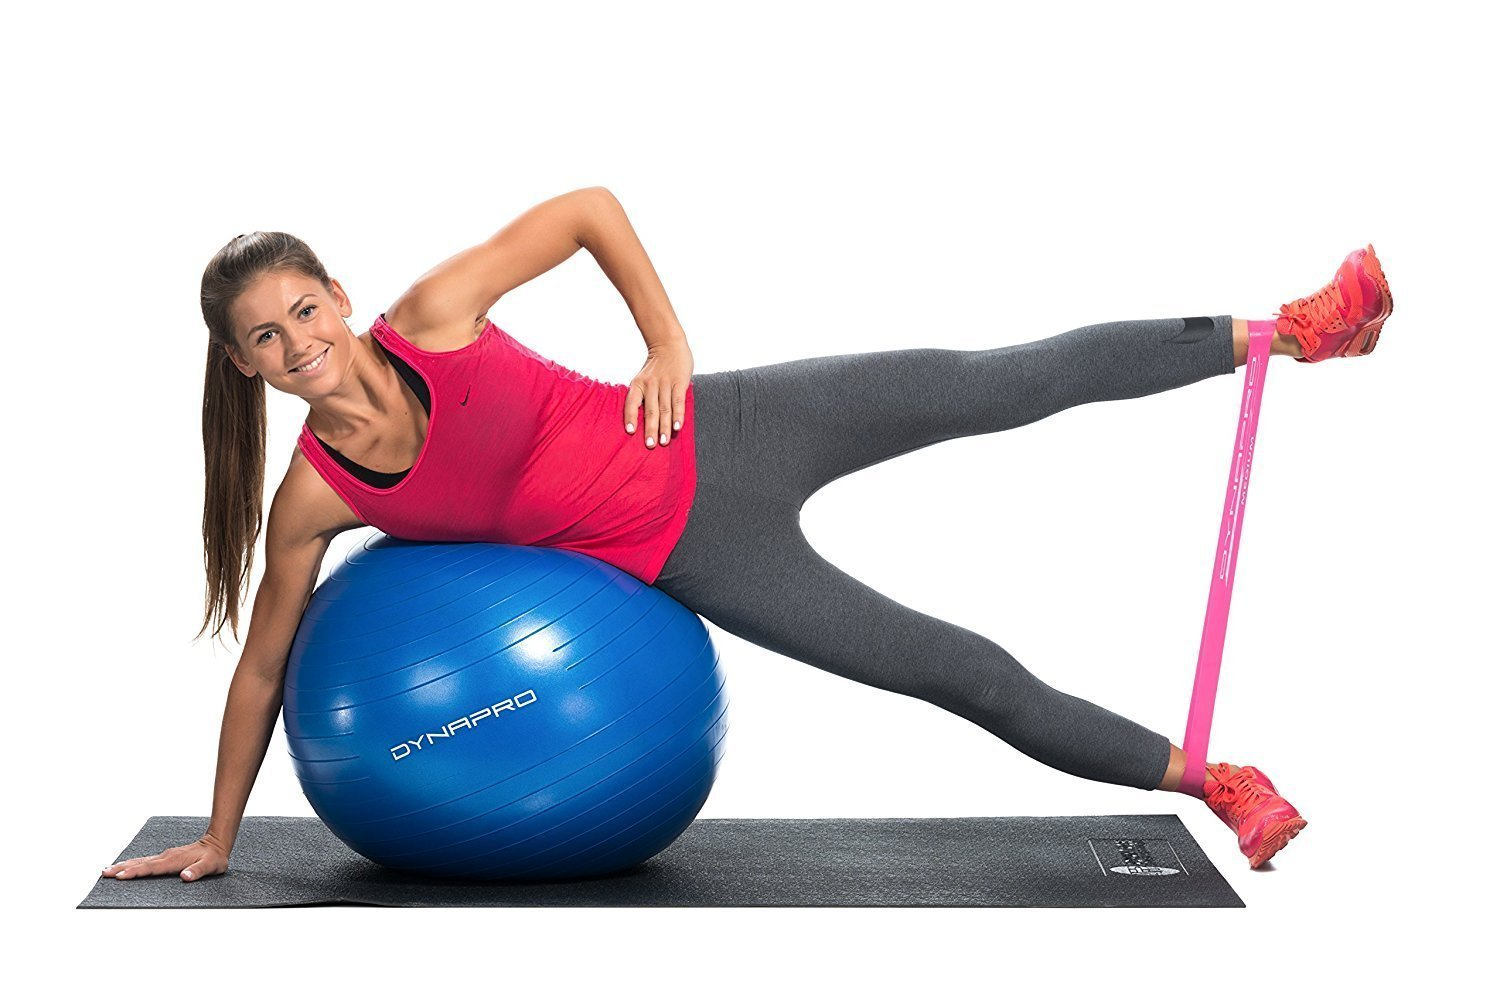 Stability Ball Exercises The Top 10 Ball Exercises for